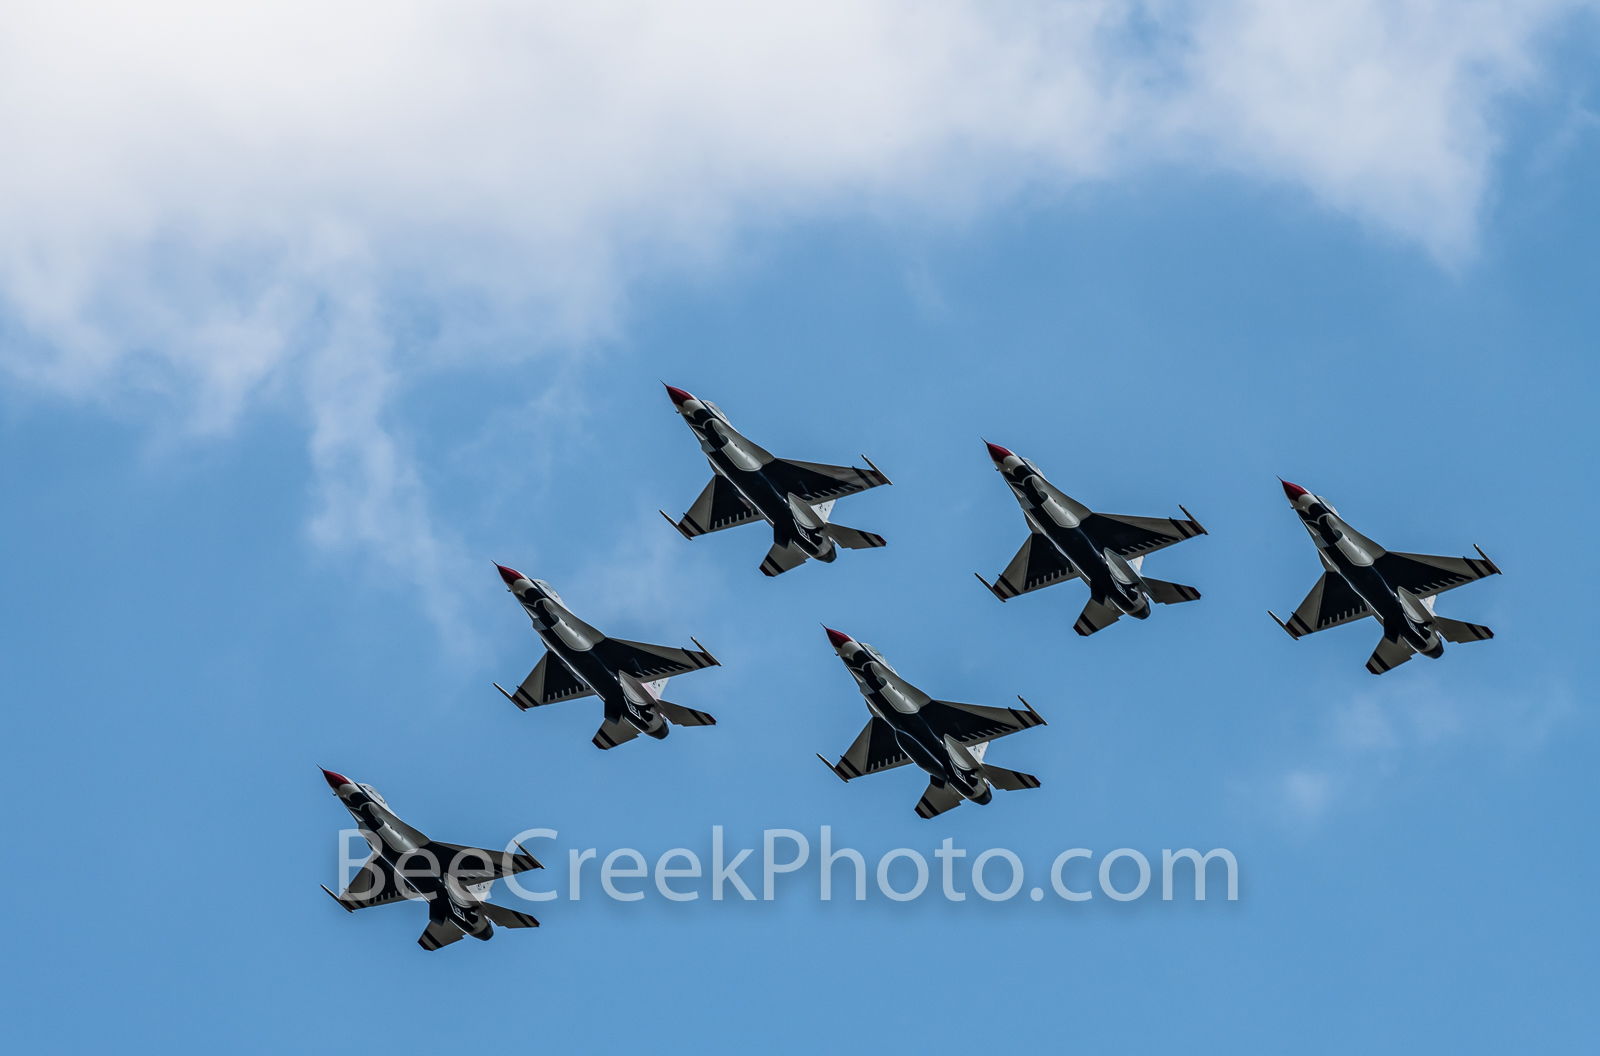 thunderbirds, america strong, salute, nurses, hospitals, jets, plane, airforce, usa, f16, air force, us air force, military, us air force, fighter jets, aviation, native american, covid19. tribute, te, photo